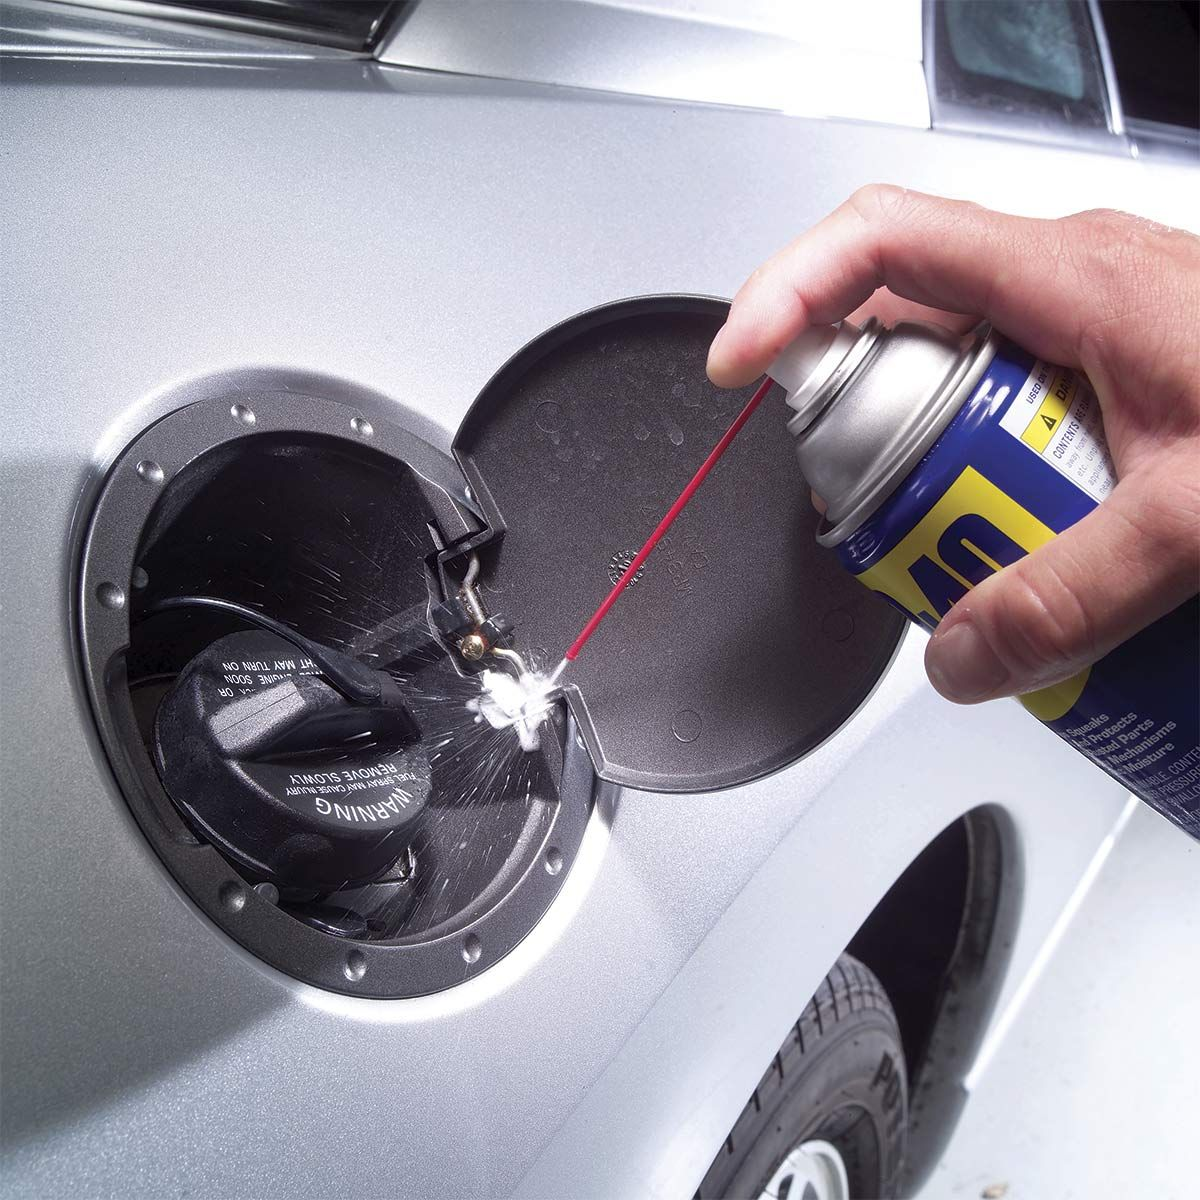 46 DIY Car Detailing Tips That Will Save You Money Car